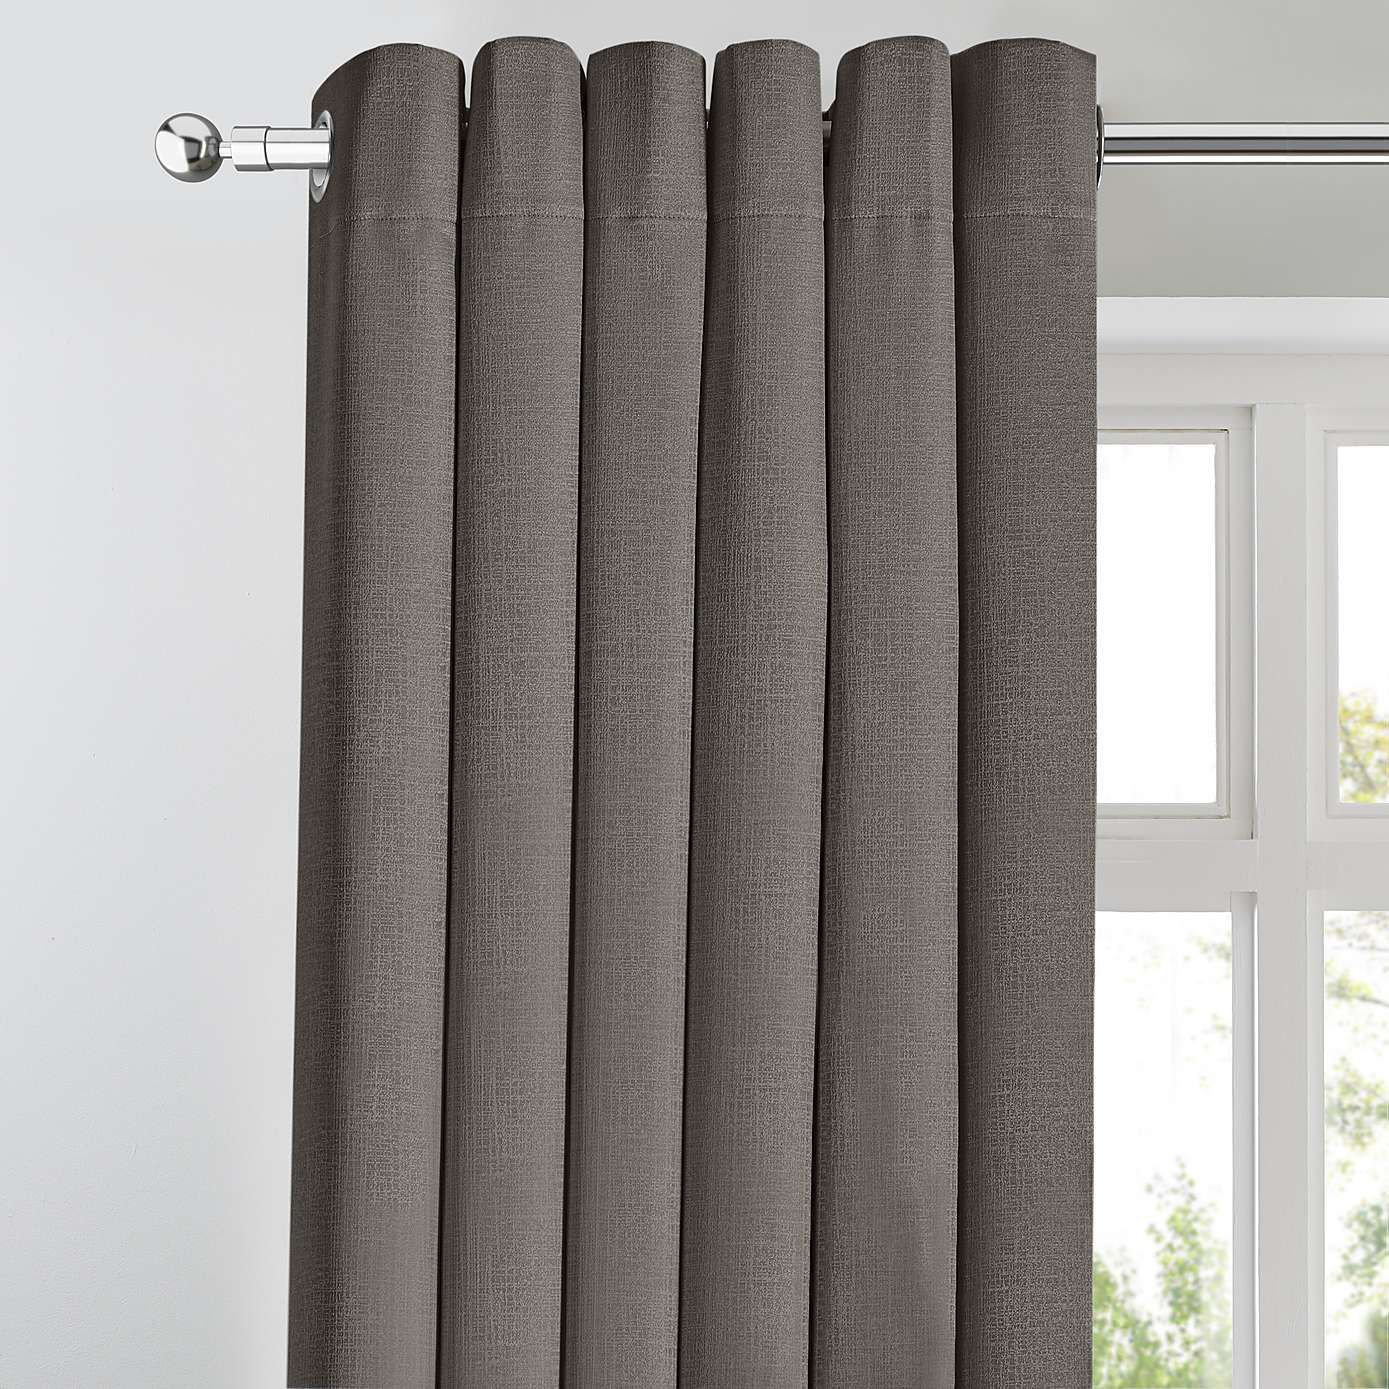 Georgia Charcoal Thermal Blackout Eyelet Curtains Dunelm Curtains Blackout Eyelet Curtains Blackout Curtains Bedroom